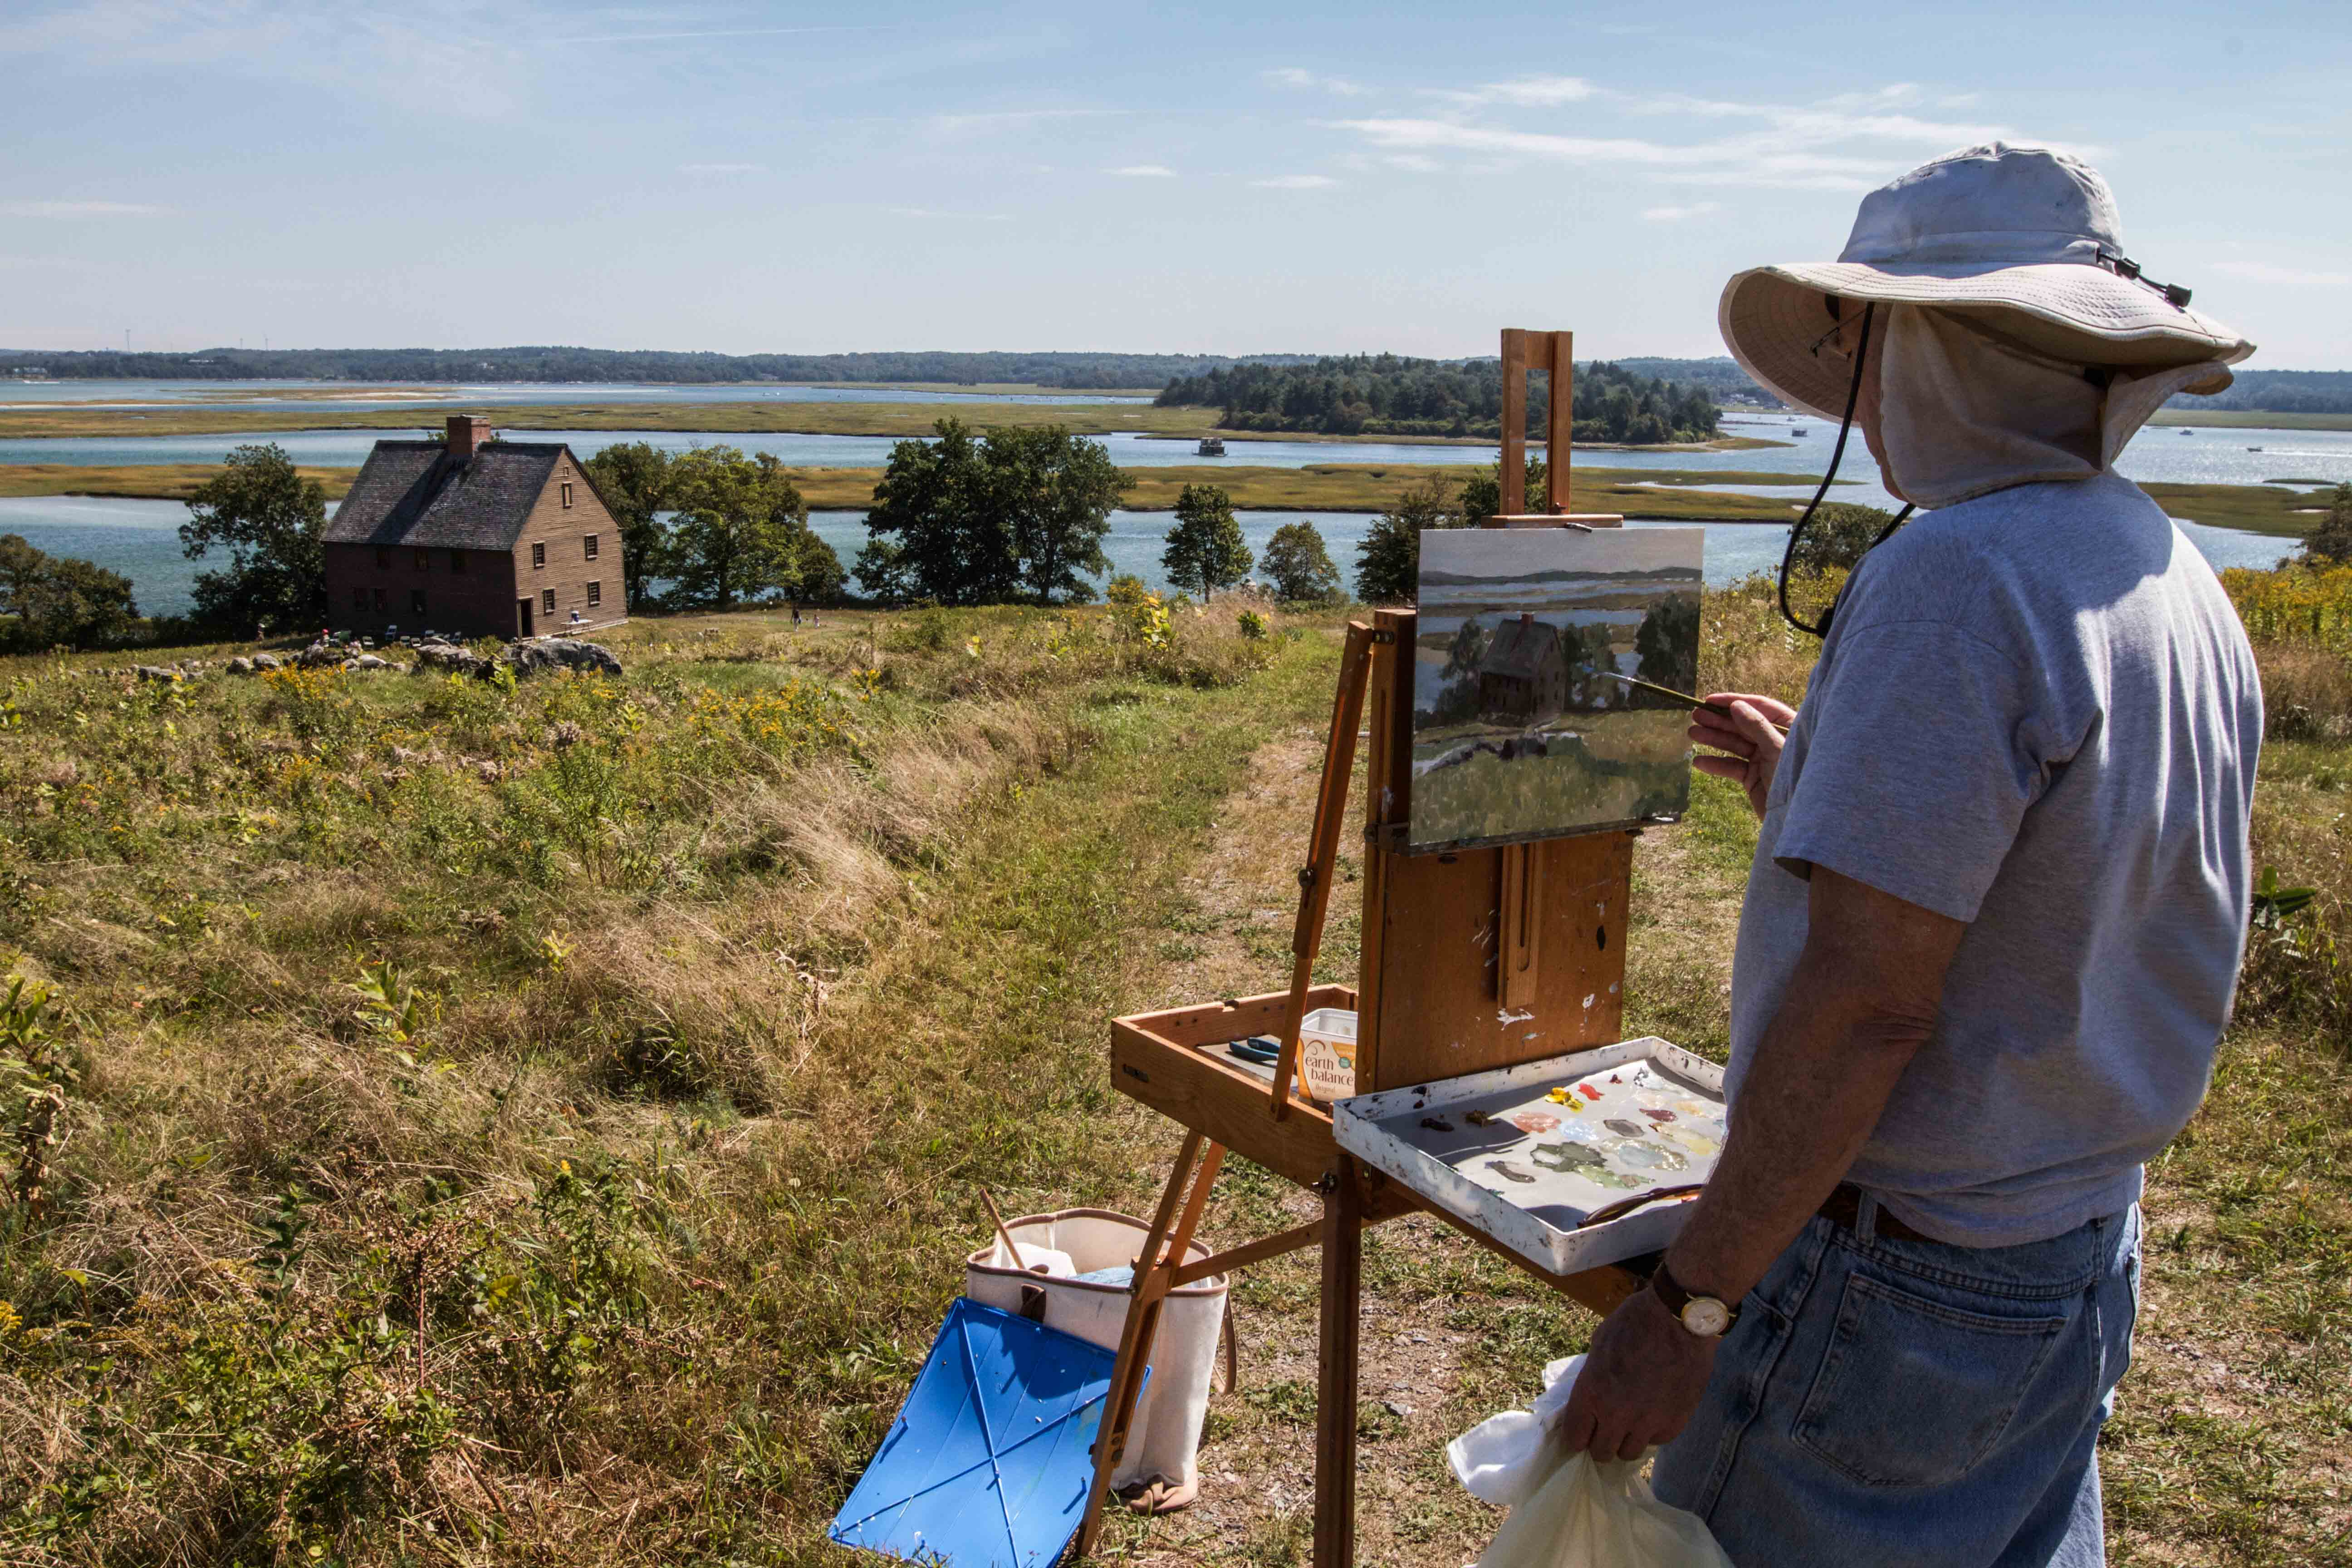 A plein air painter on Choate Island, a 135-acre preserve in the Essex River estuary, captures the Choate House, which was built more than 250 years old. The island was the setting for the 1996 movie The Crucible. Based on the play by Arthur Miller and starring Daniel Day-Lewis, the movie is a fictionalized account of the Salem, Mass., witch trials in the early 1690s. (Photo by Coco McCabe/GroundTruth)